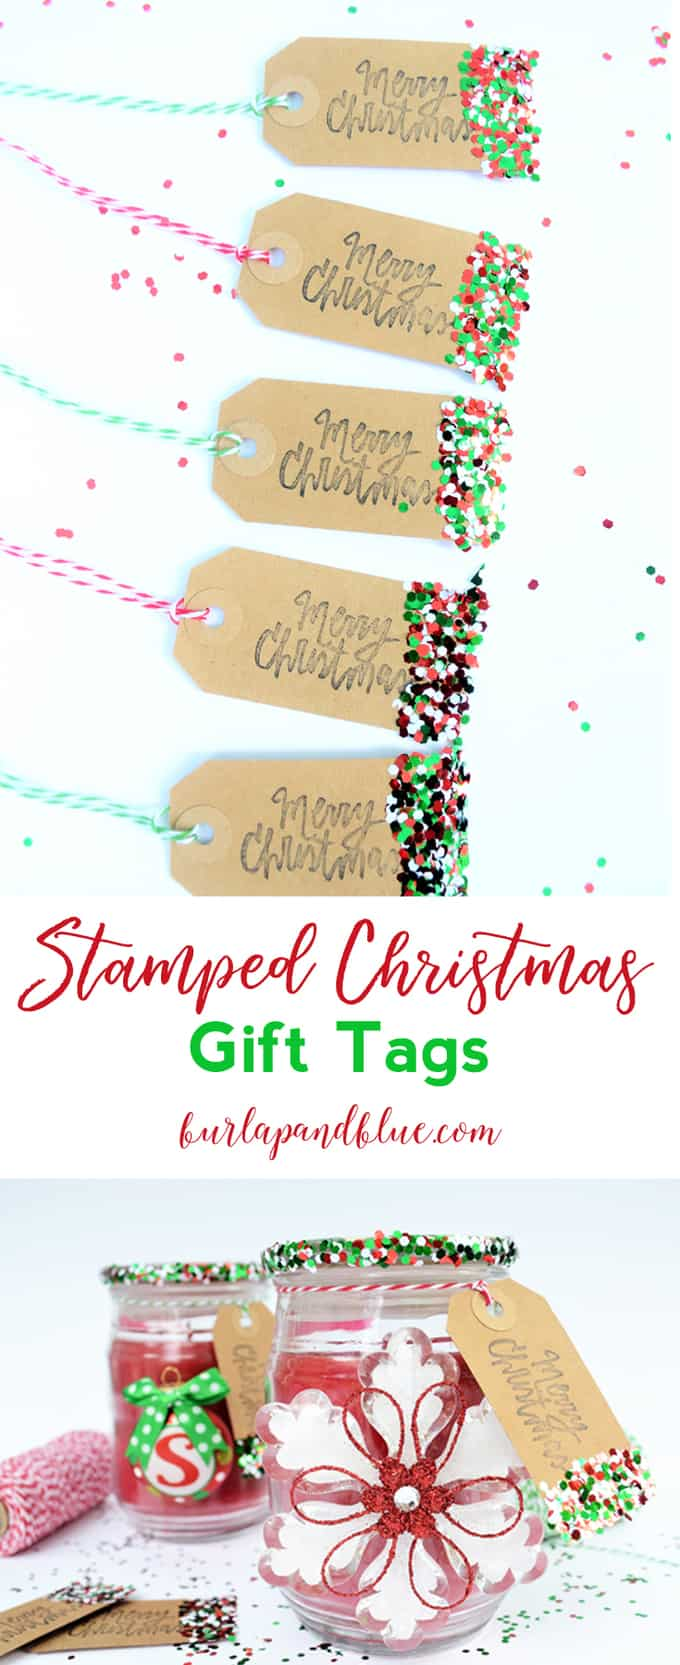 Tutorial | Make Stamped Christmas Gift Tags